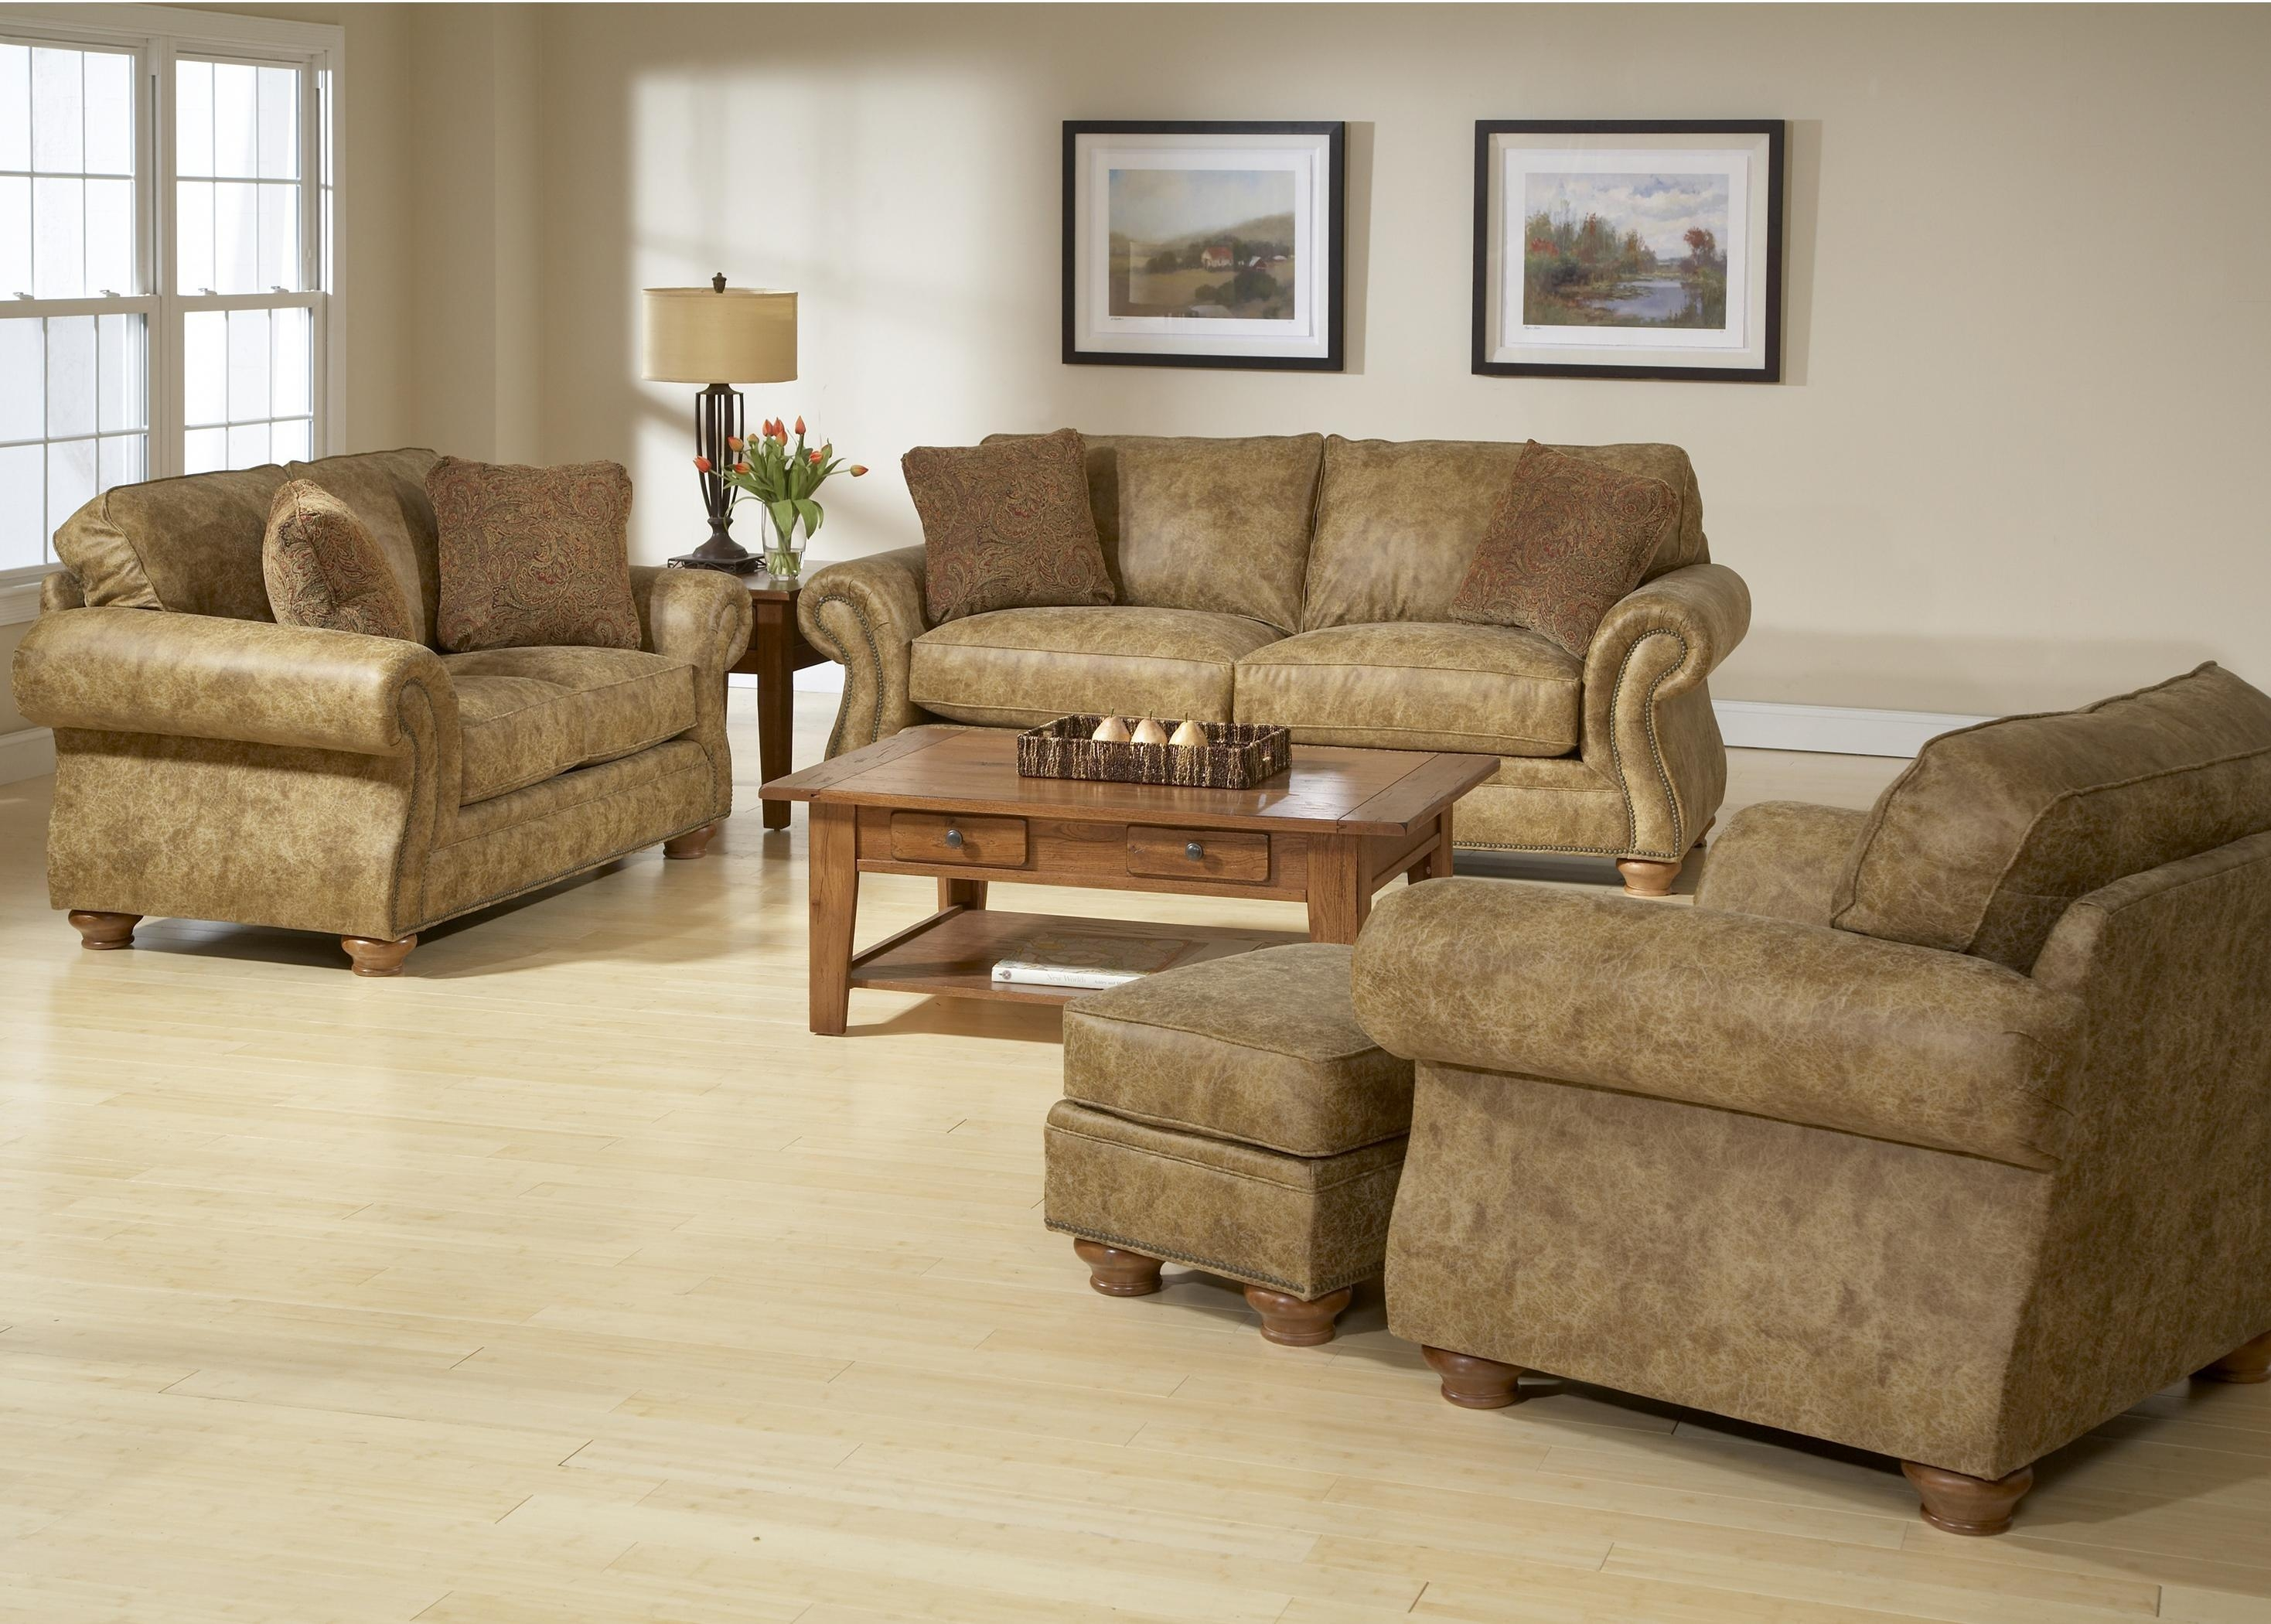 Furniture: Pick Your Lovely Broyhill Couch Design For Your Living With Broyhill Sectional Sleeper Sofas (Image 15 of 20)